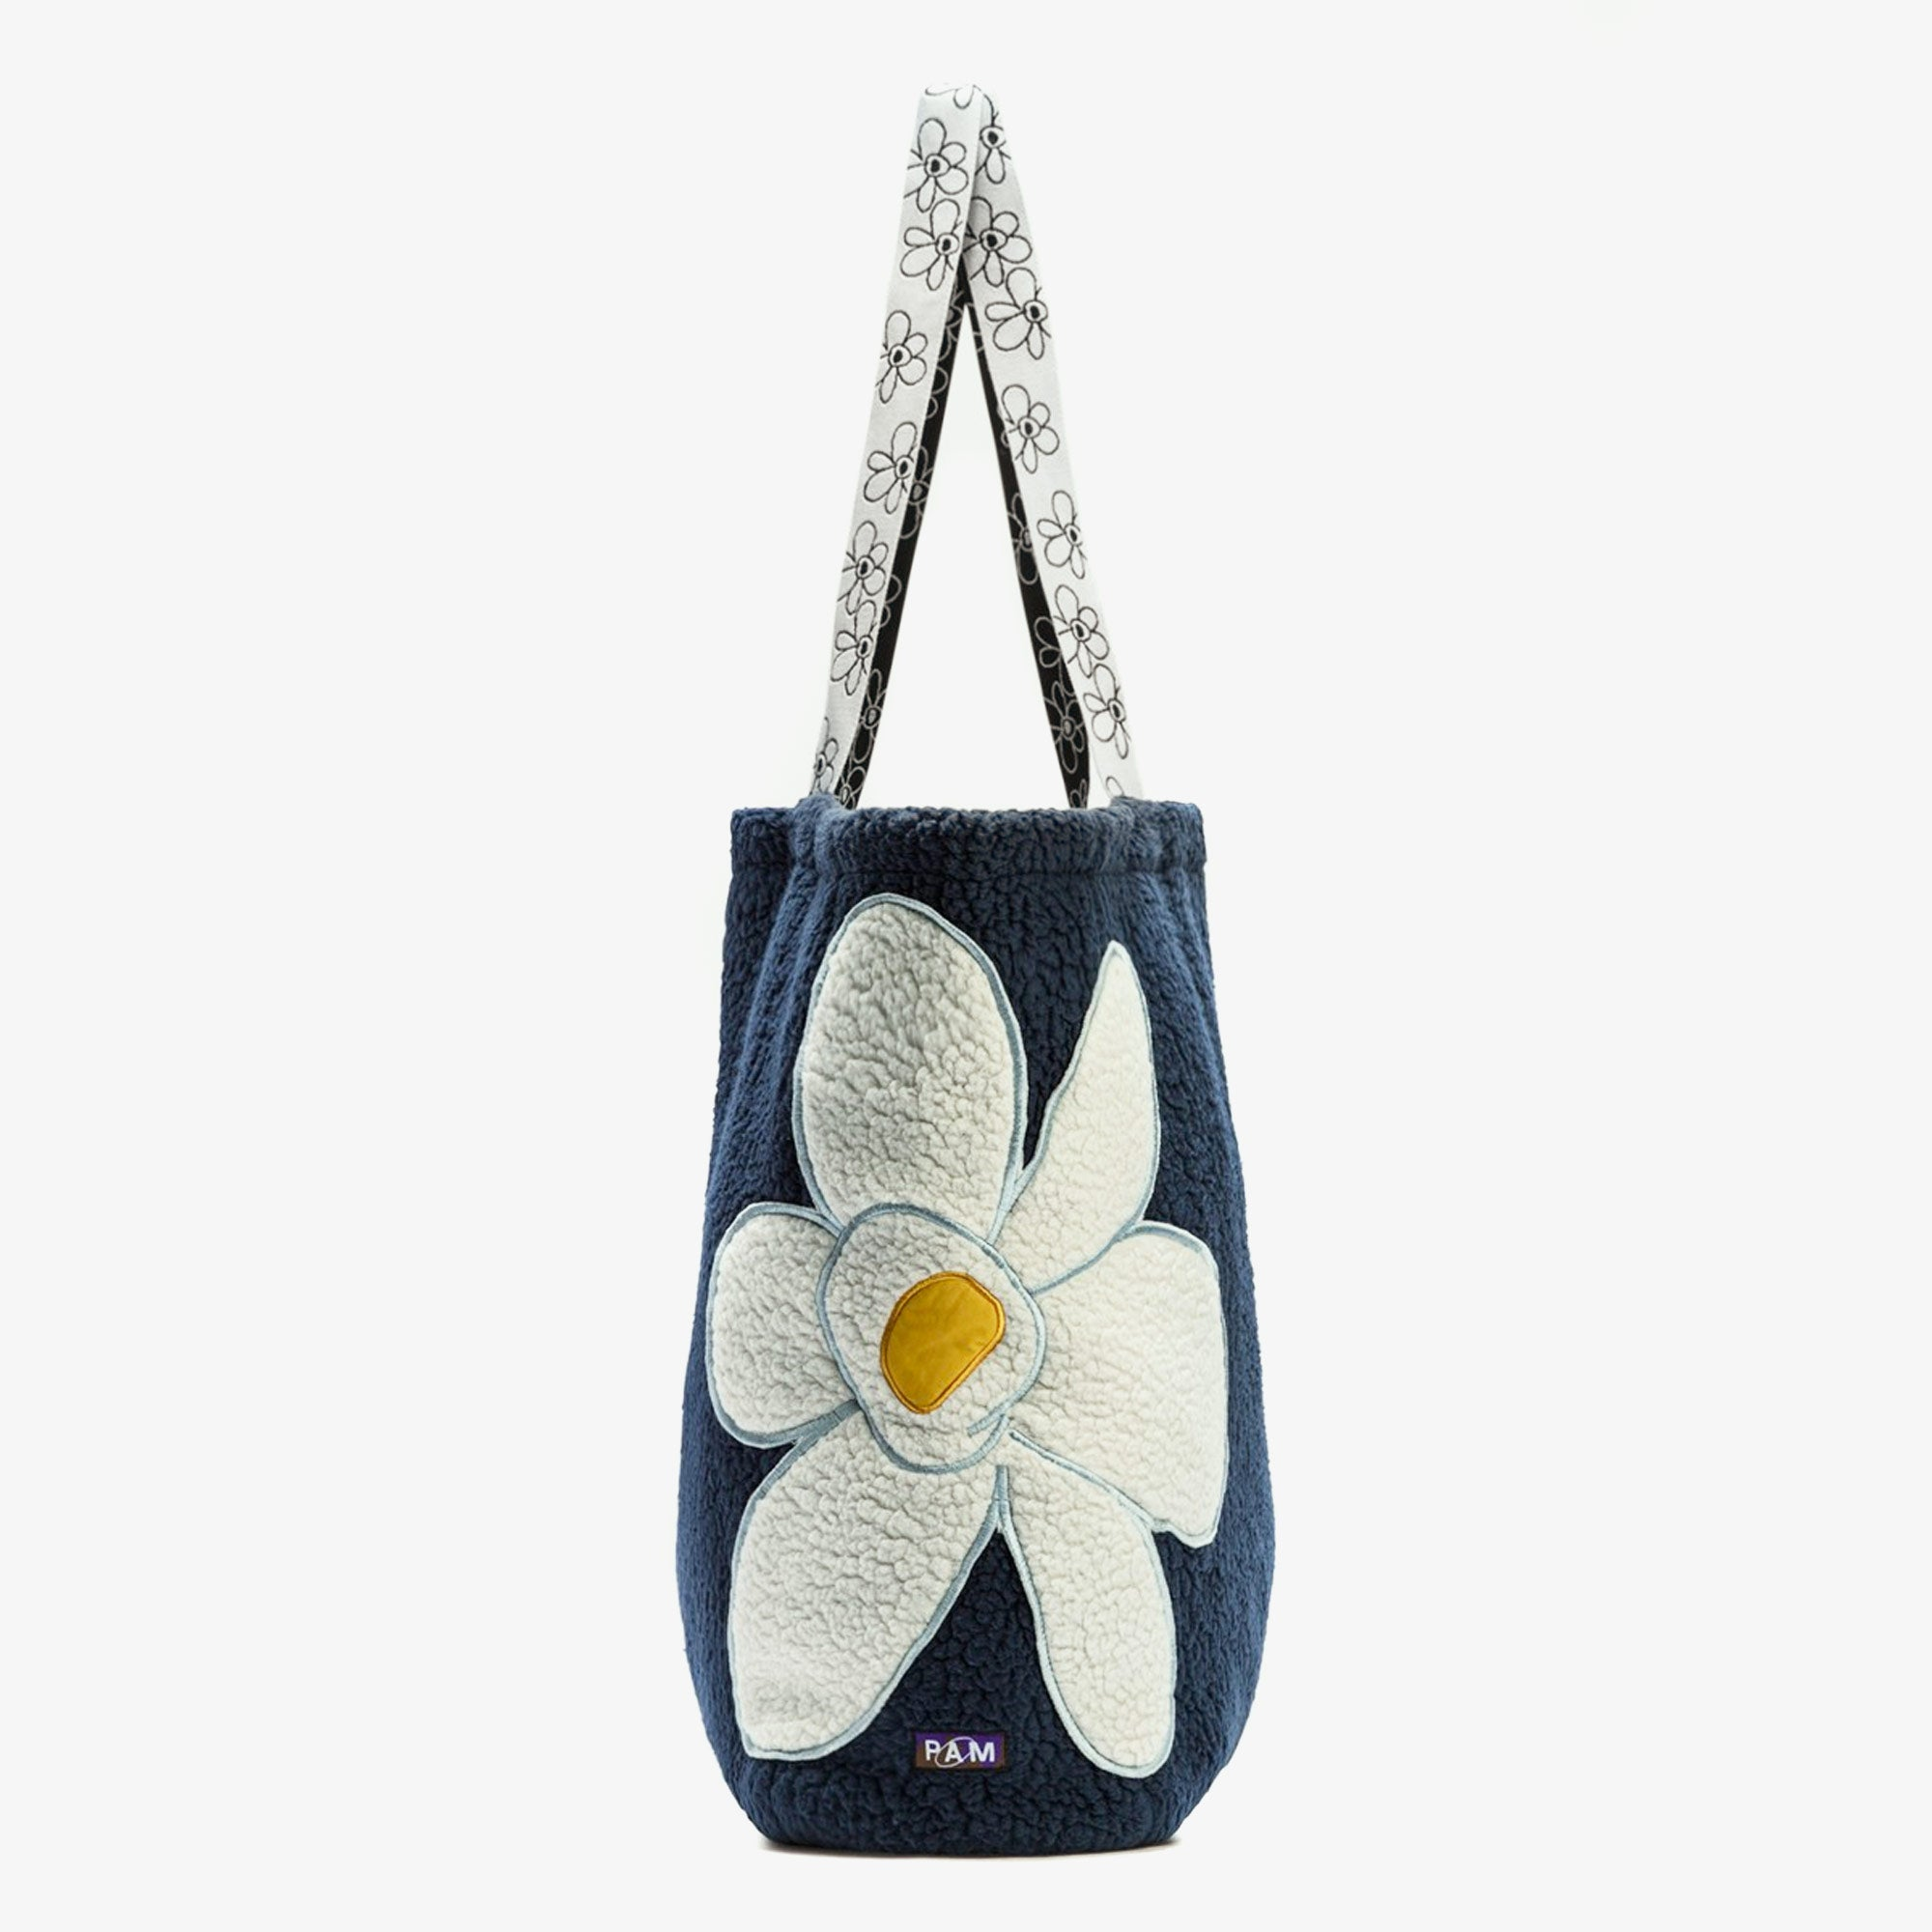 Perks and Mini (P.A.M.) Popping Gestures Recycled Shearling Tote Bag - Navy Fog 3